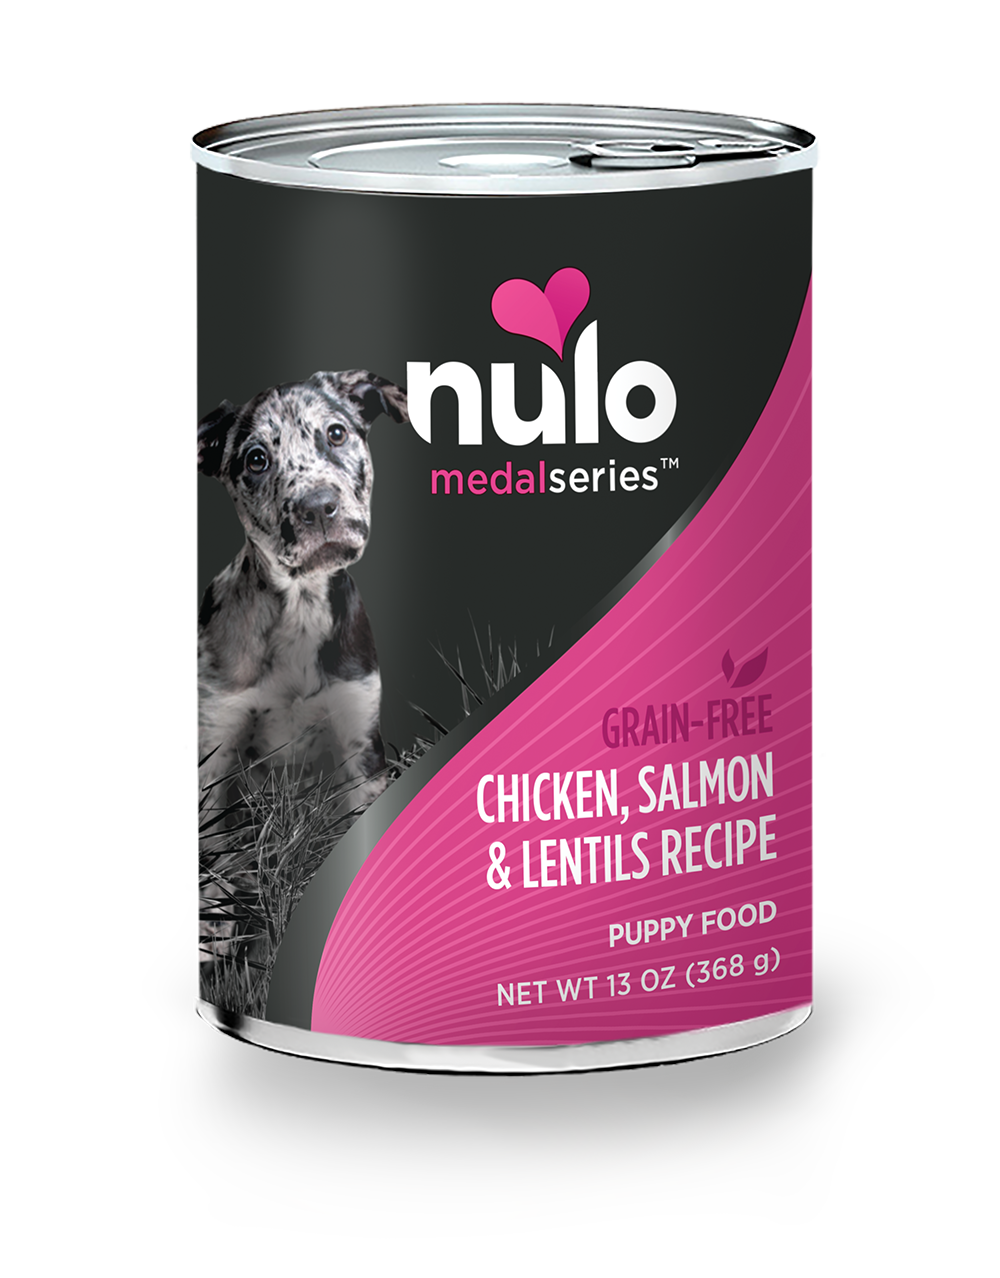 MedalSeries Canned Puppy Chicken, Salmon & Lentils Recipe ...